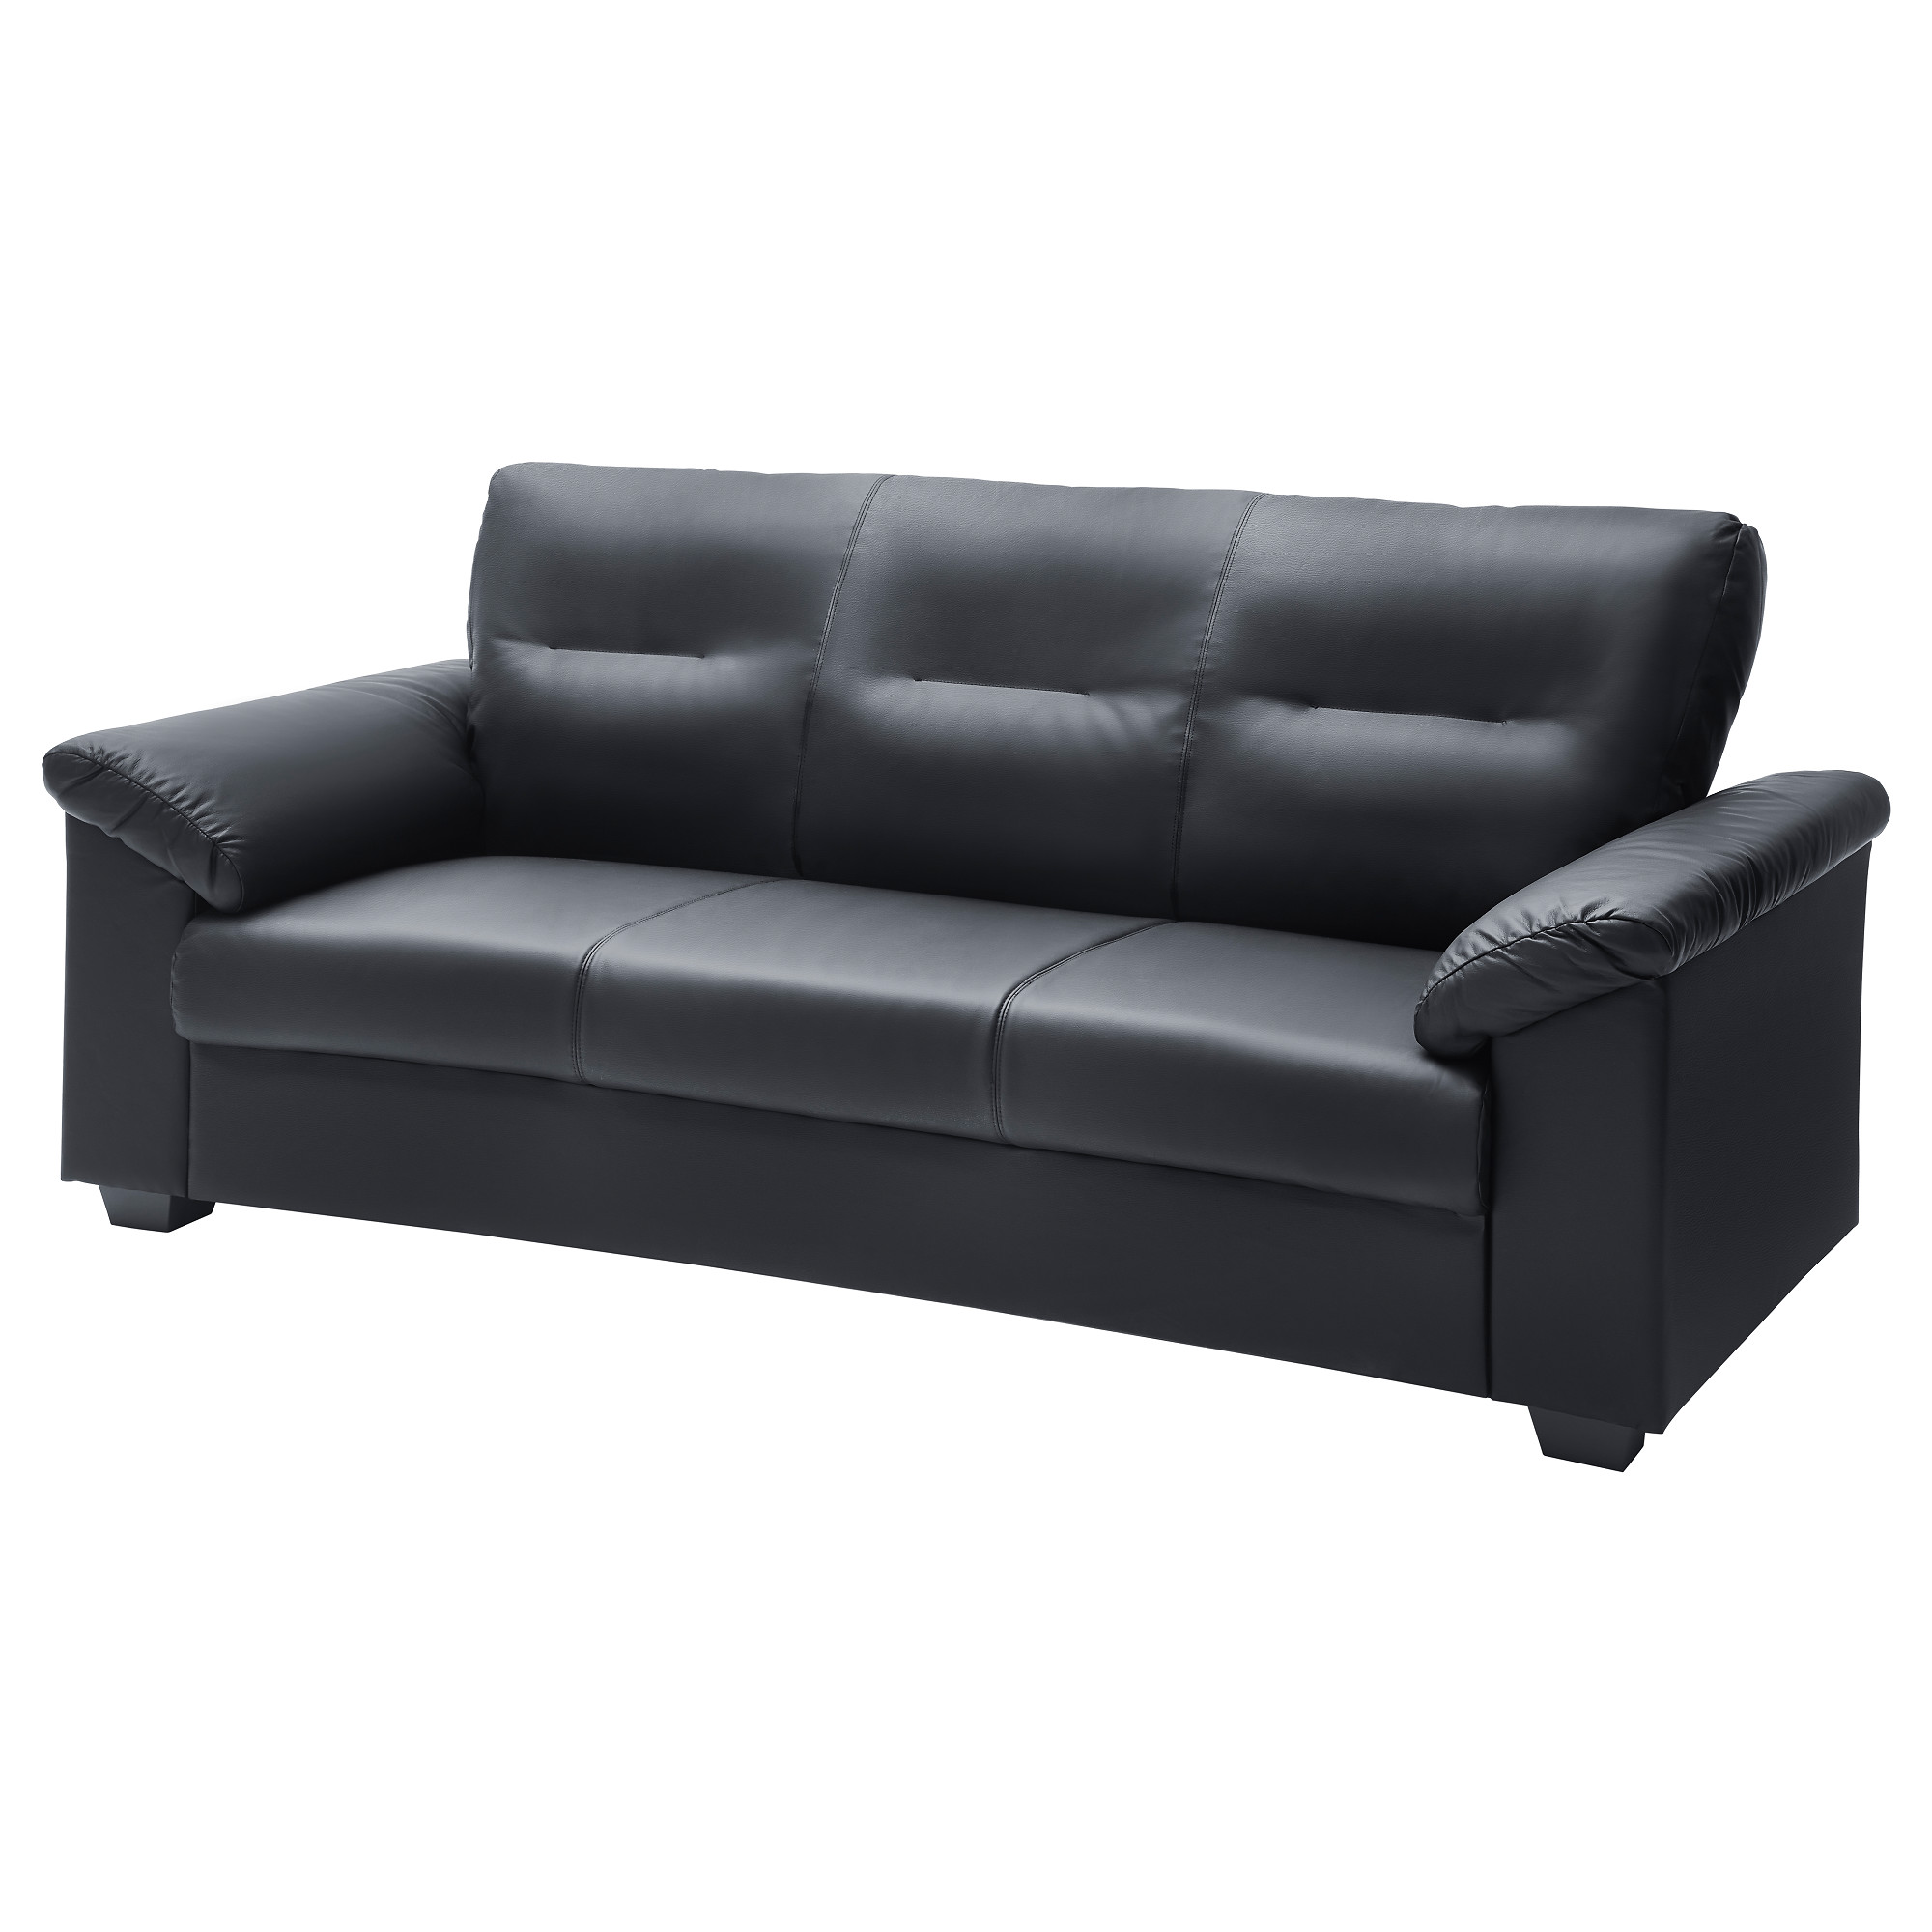 Leather Sofas Modern & Contemporary IKEA